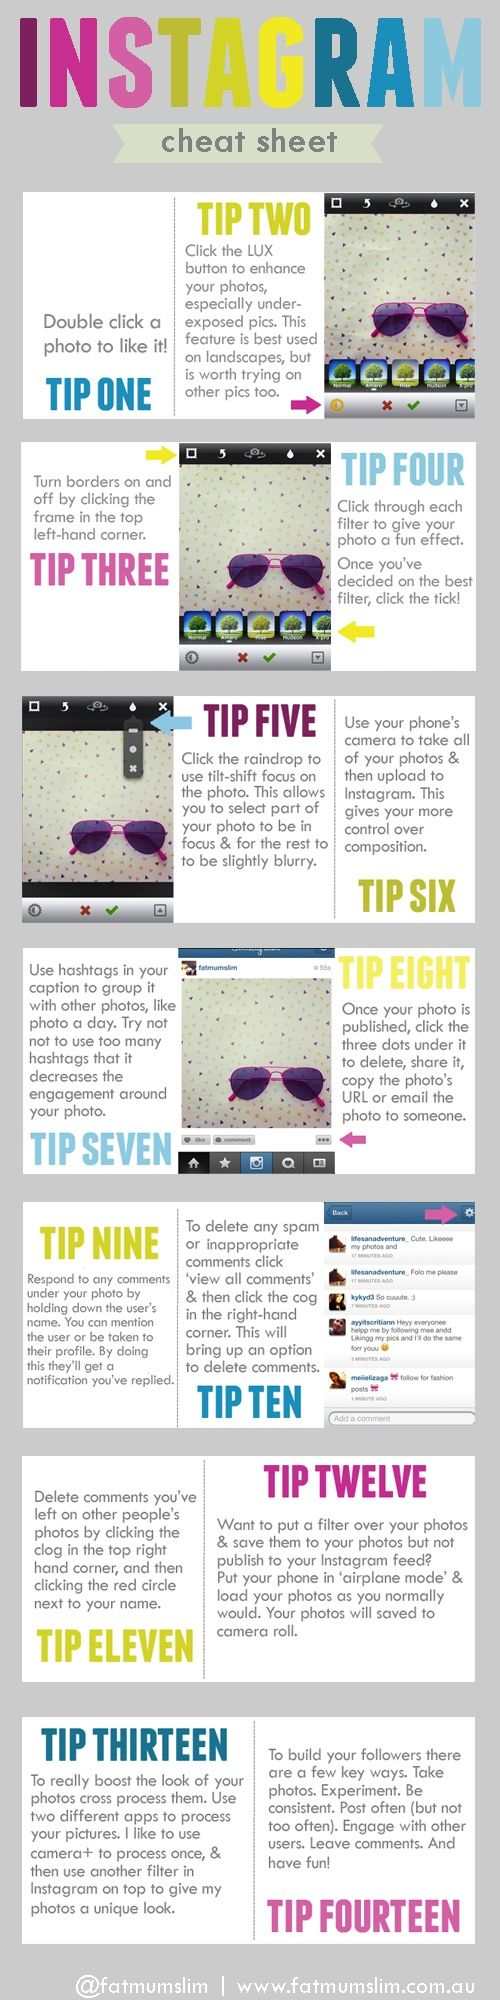 Instagram cheat sheet #infographic